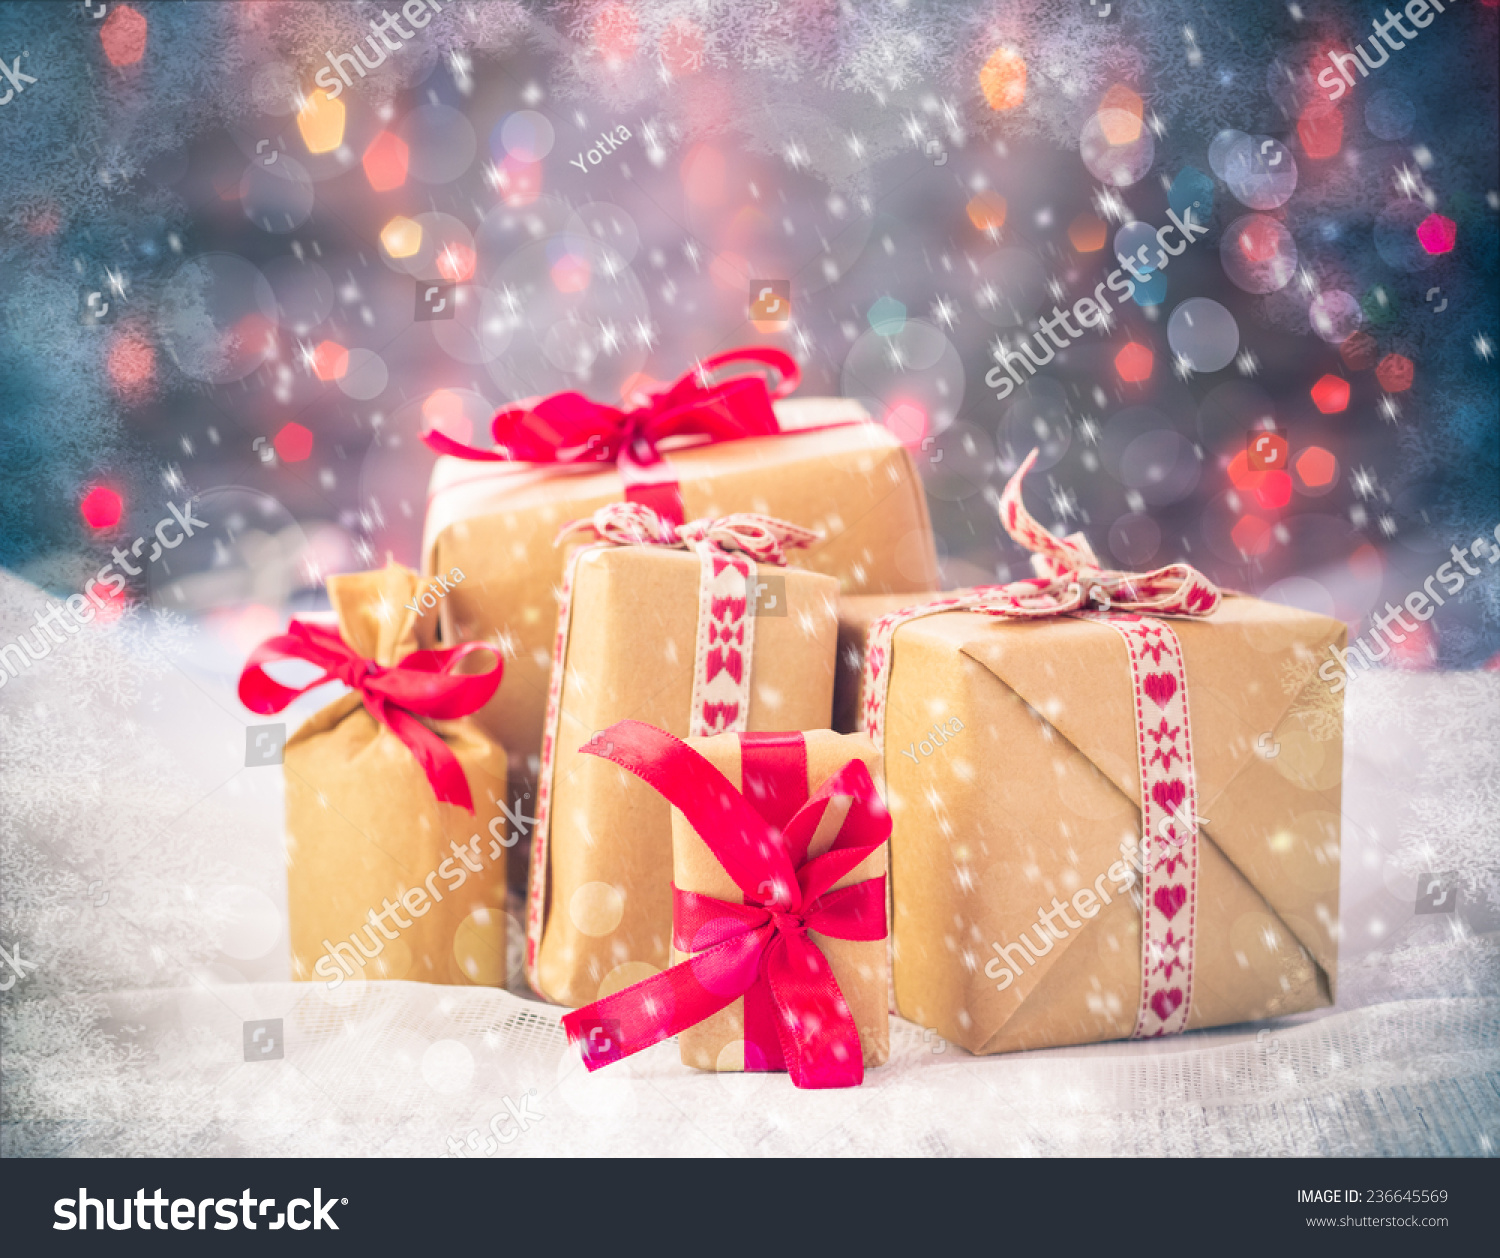 Presents Under The Christmas Tree: Packets Of Presents Under The Christmas Tree On The